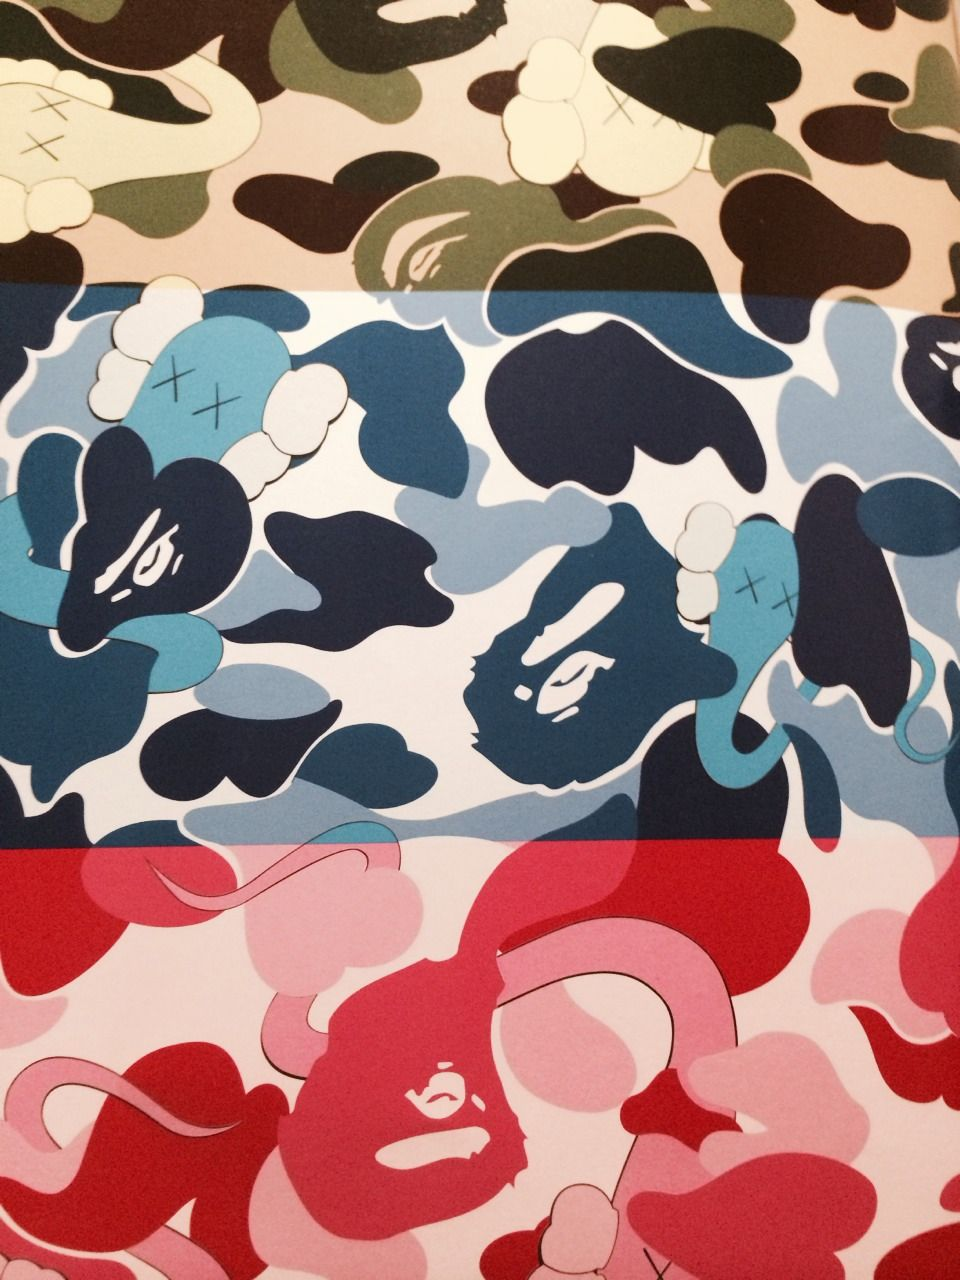 Kaws X Bape Bape Wallpapers Kaws Wallpaper Hypebeast Wallpaper